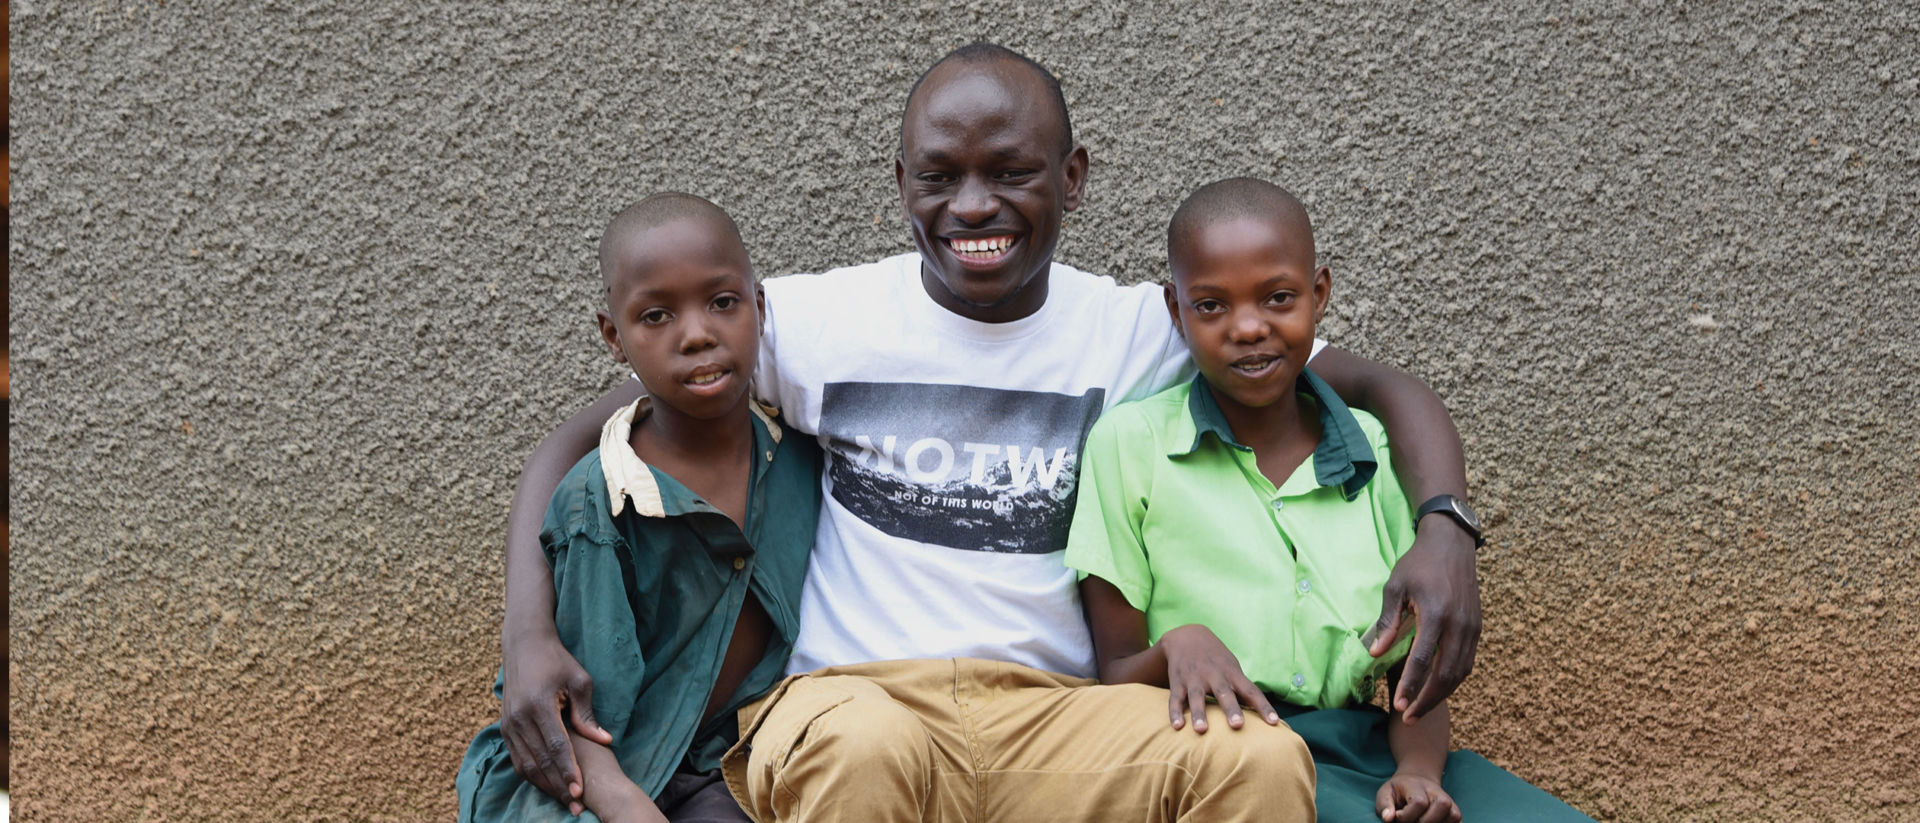 Peter's nonprofit in Uganda focuses on keeping children in school and safe